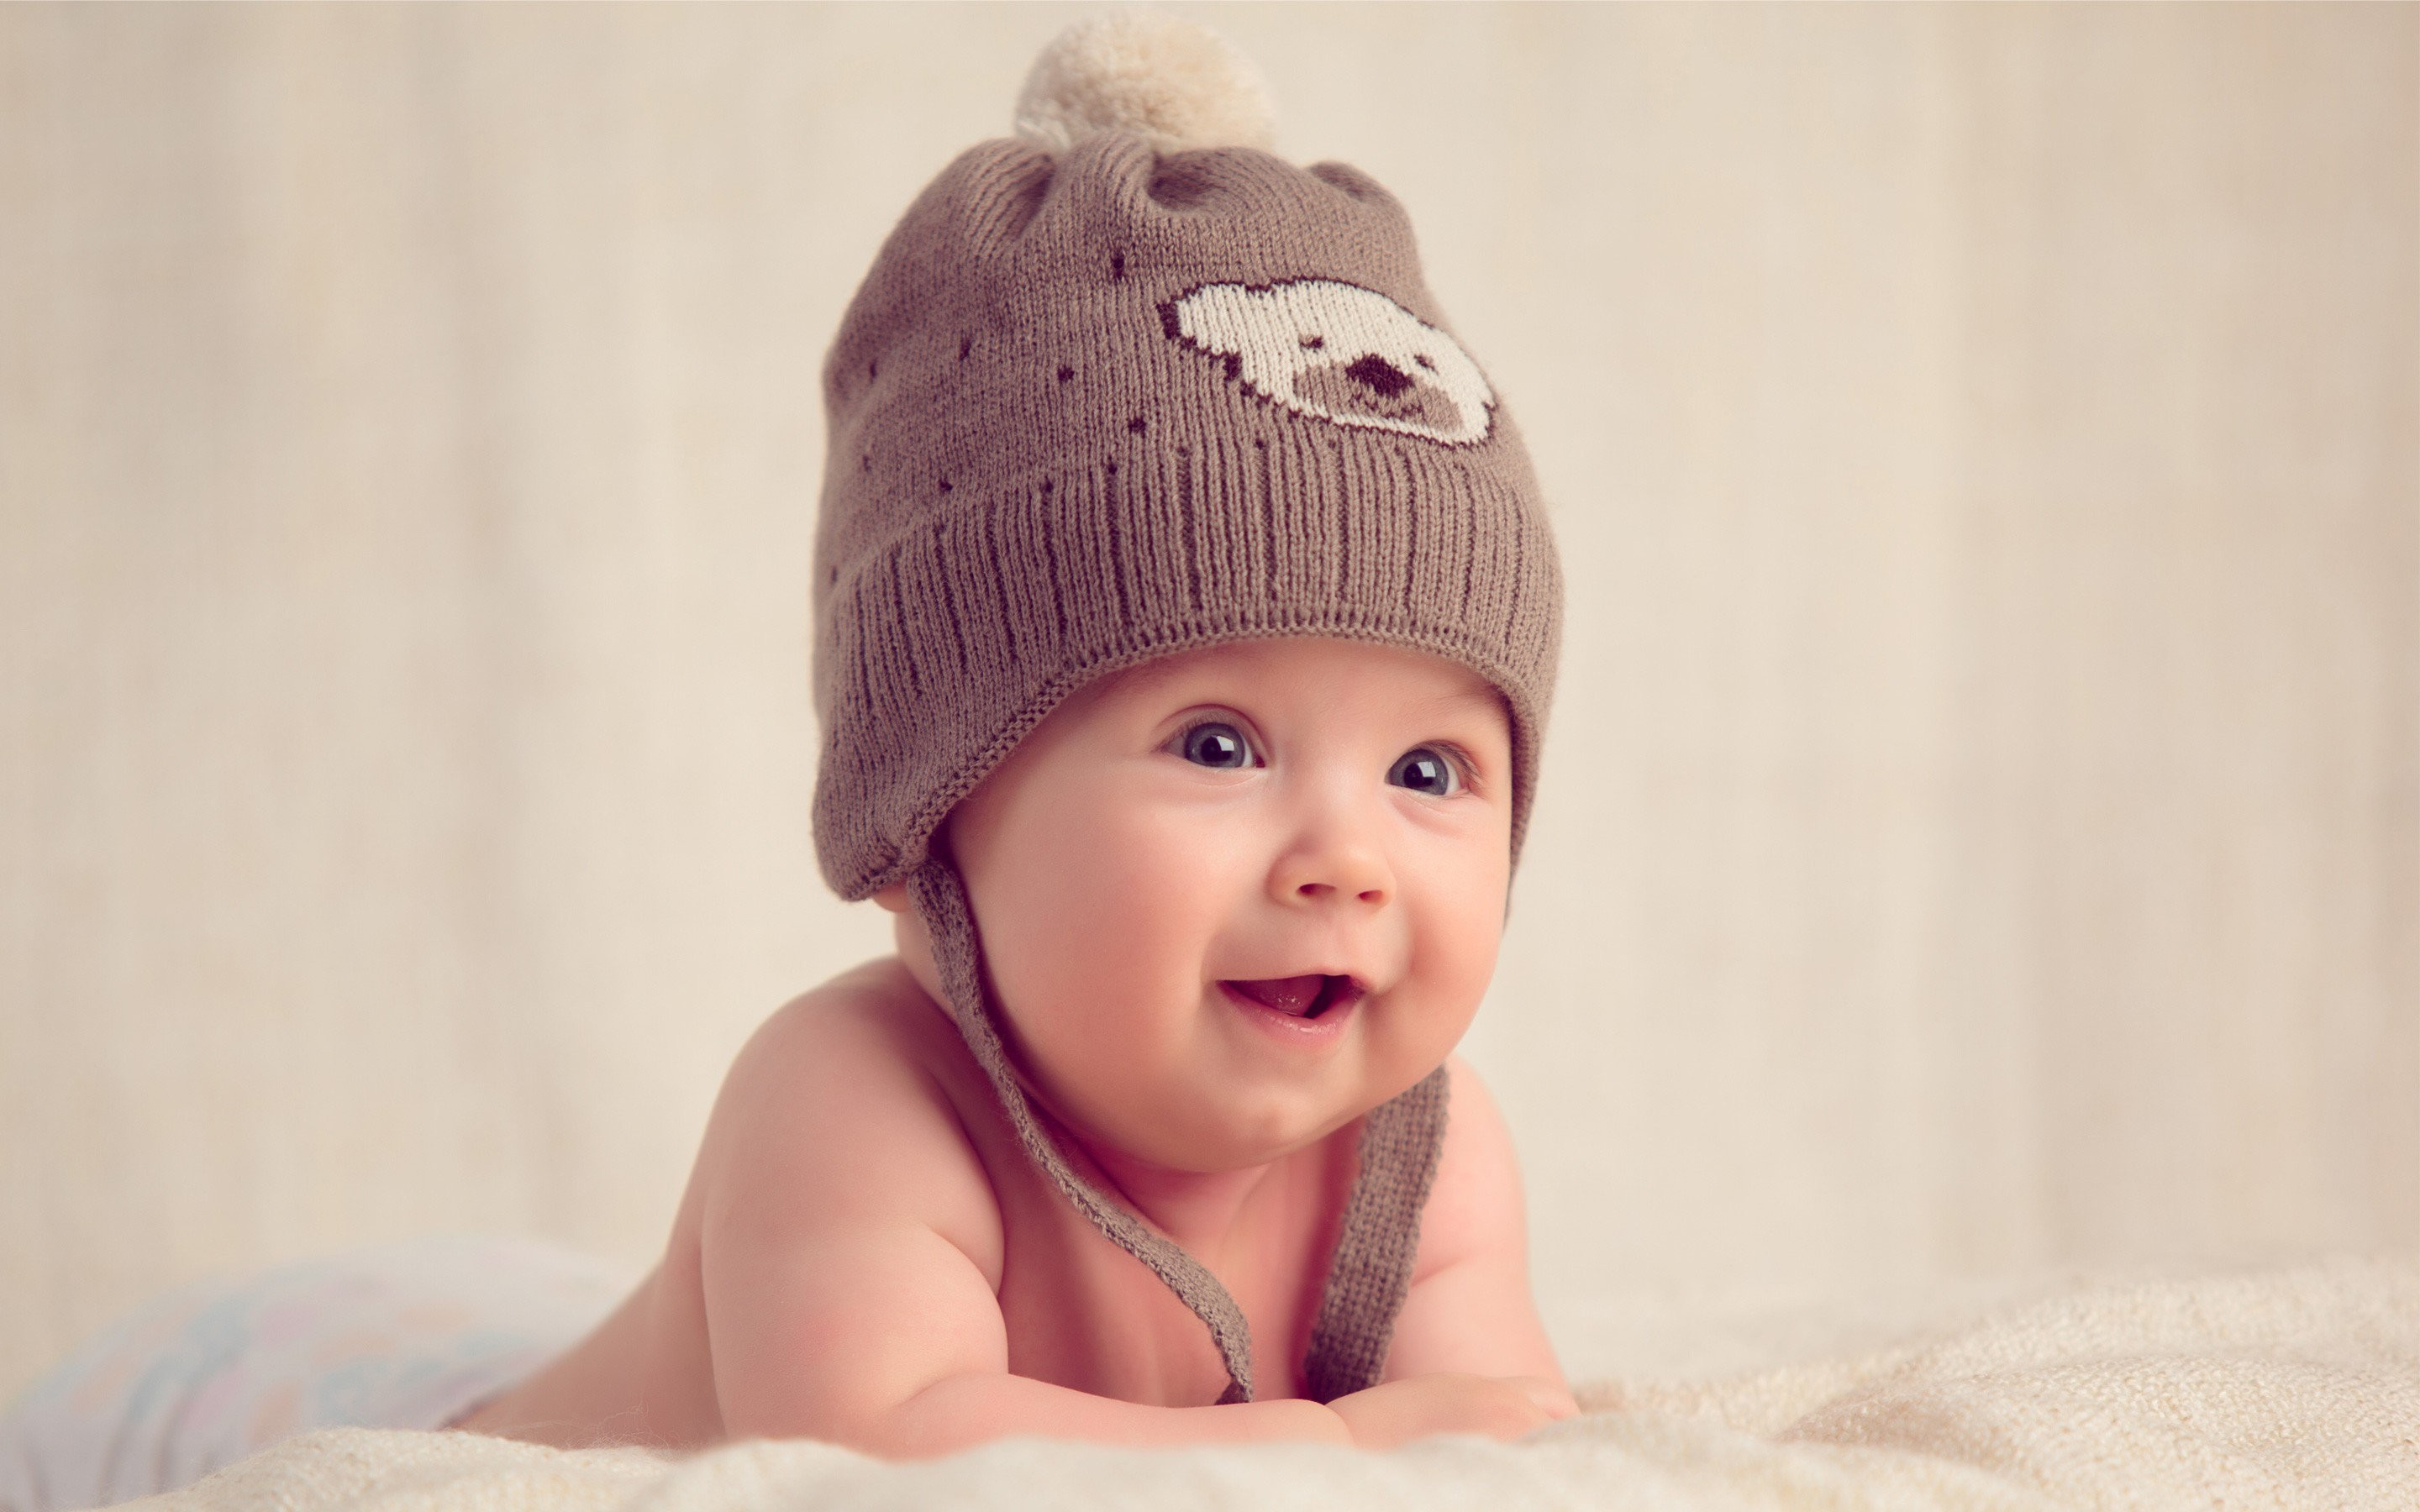 Wallpapers Pictures Of Babies 62 Pictures